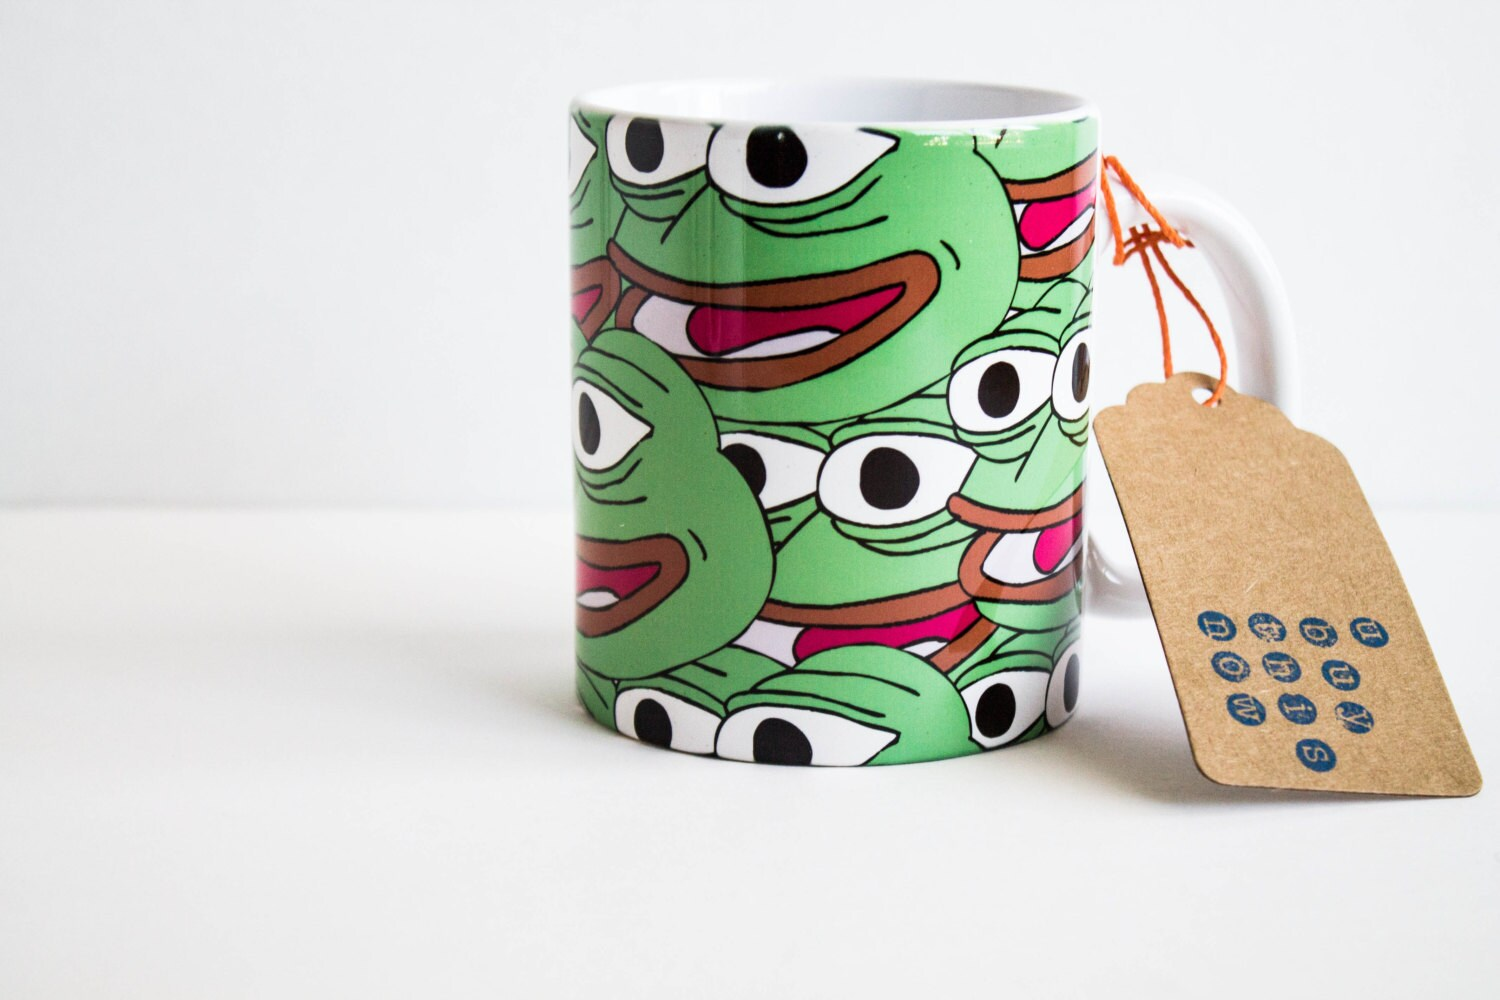 Pepe The Frog Pepe The Frog Coffee Mug Pepe The By Ubuythisnow